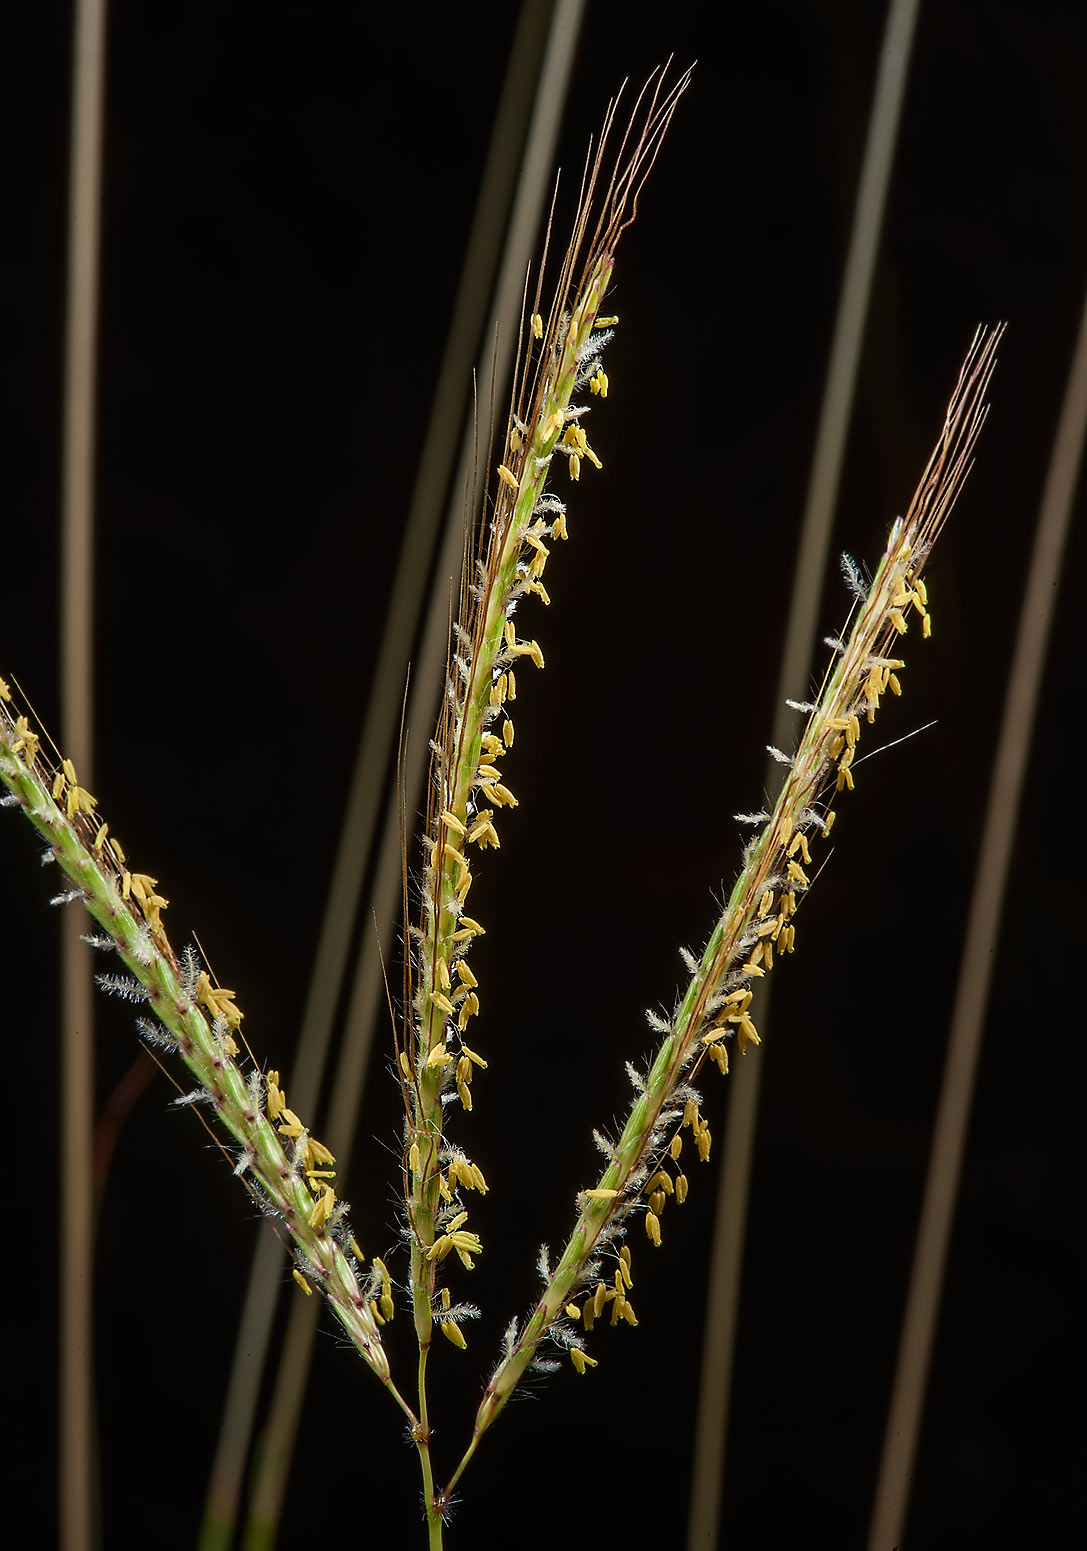 Blooming Hindi grass (Diaz bluestem, Dichanthium...of Al Magdah farms. Northern Qatar